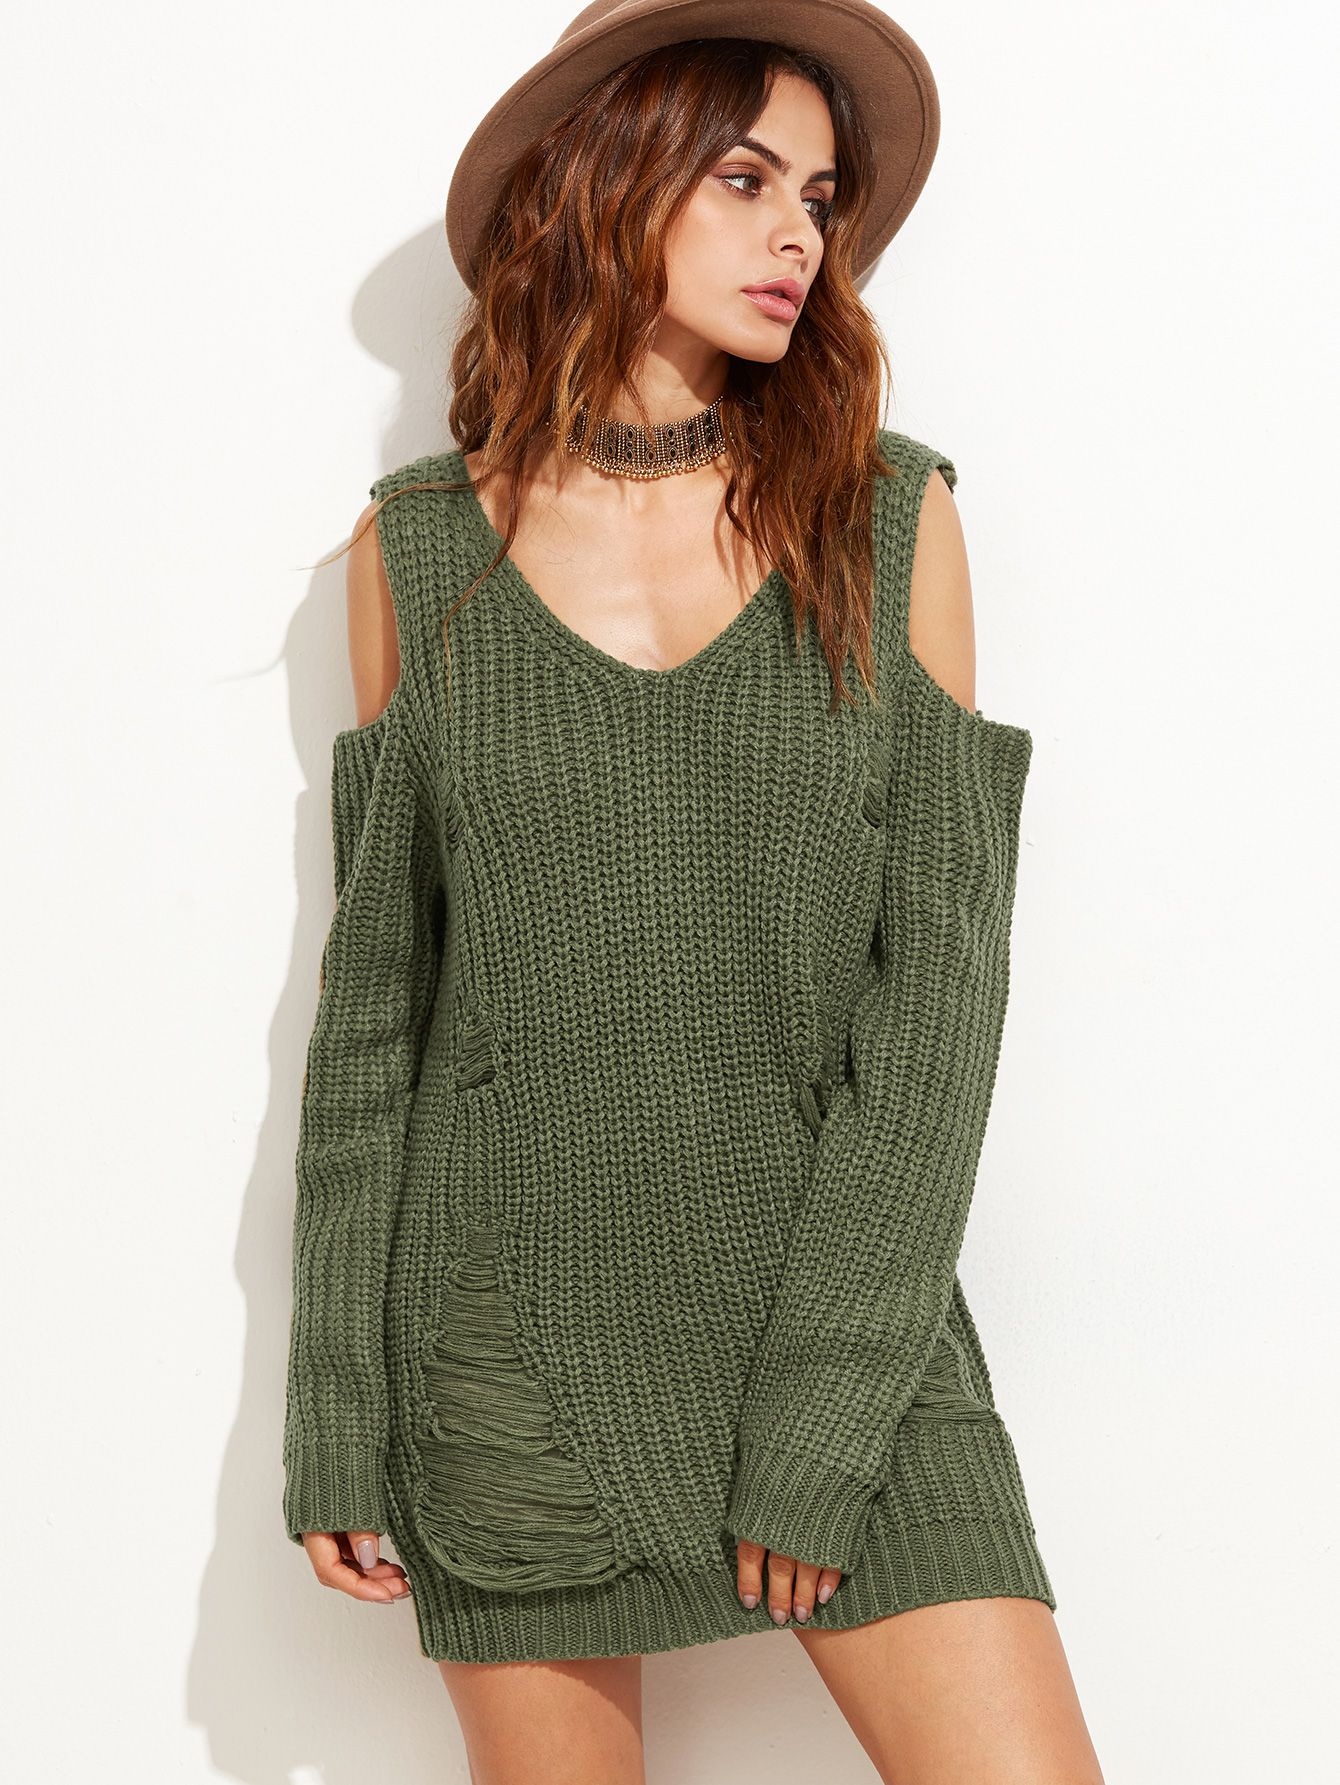 53ff09aece Shop Olive Green Cold Shoulder Ripped Sweater Dress online. SheIn ...